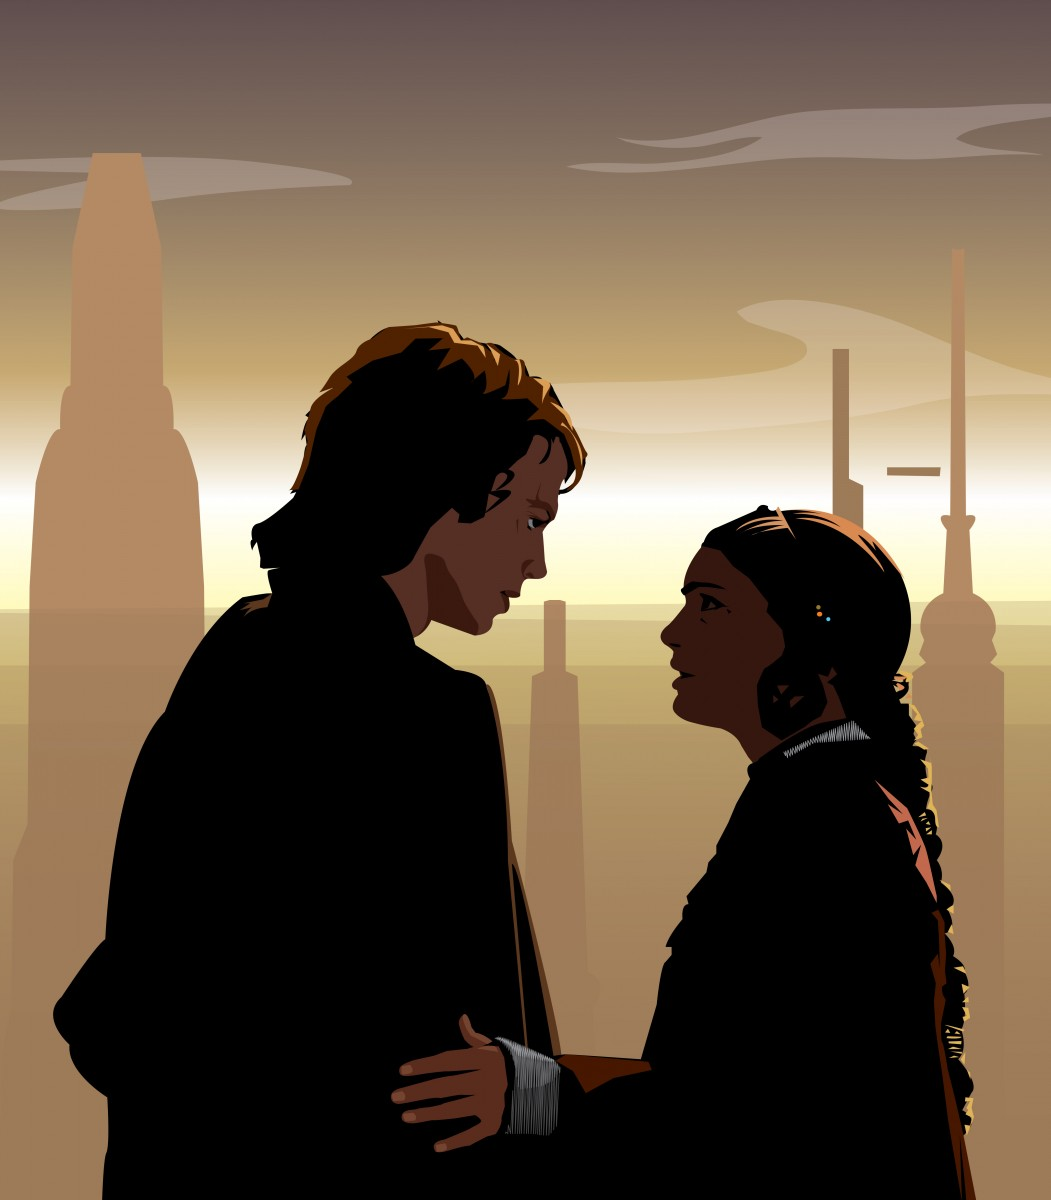 Anakin and Padmé